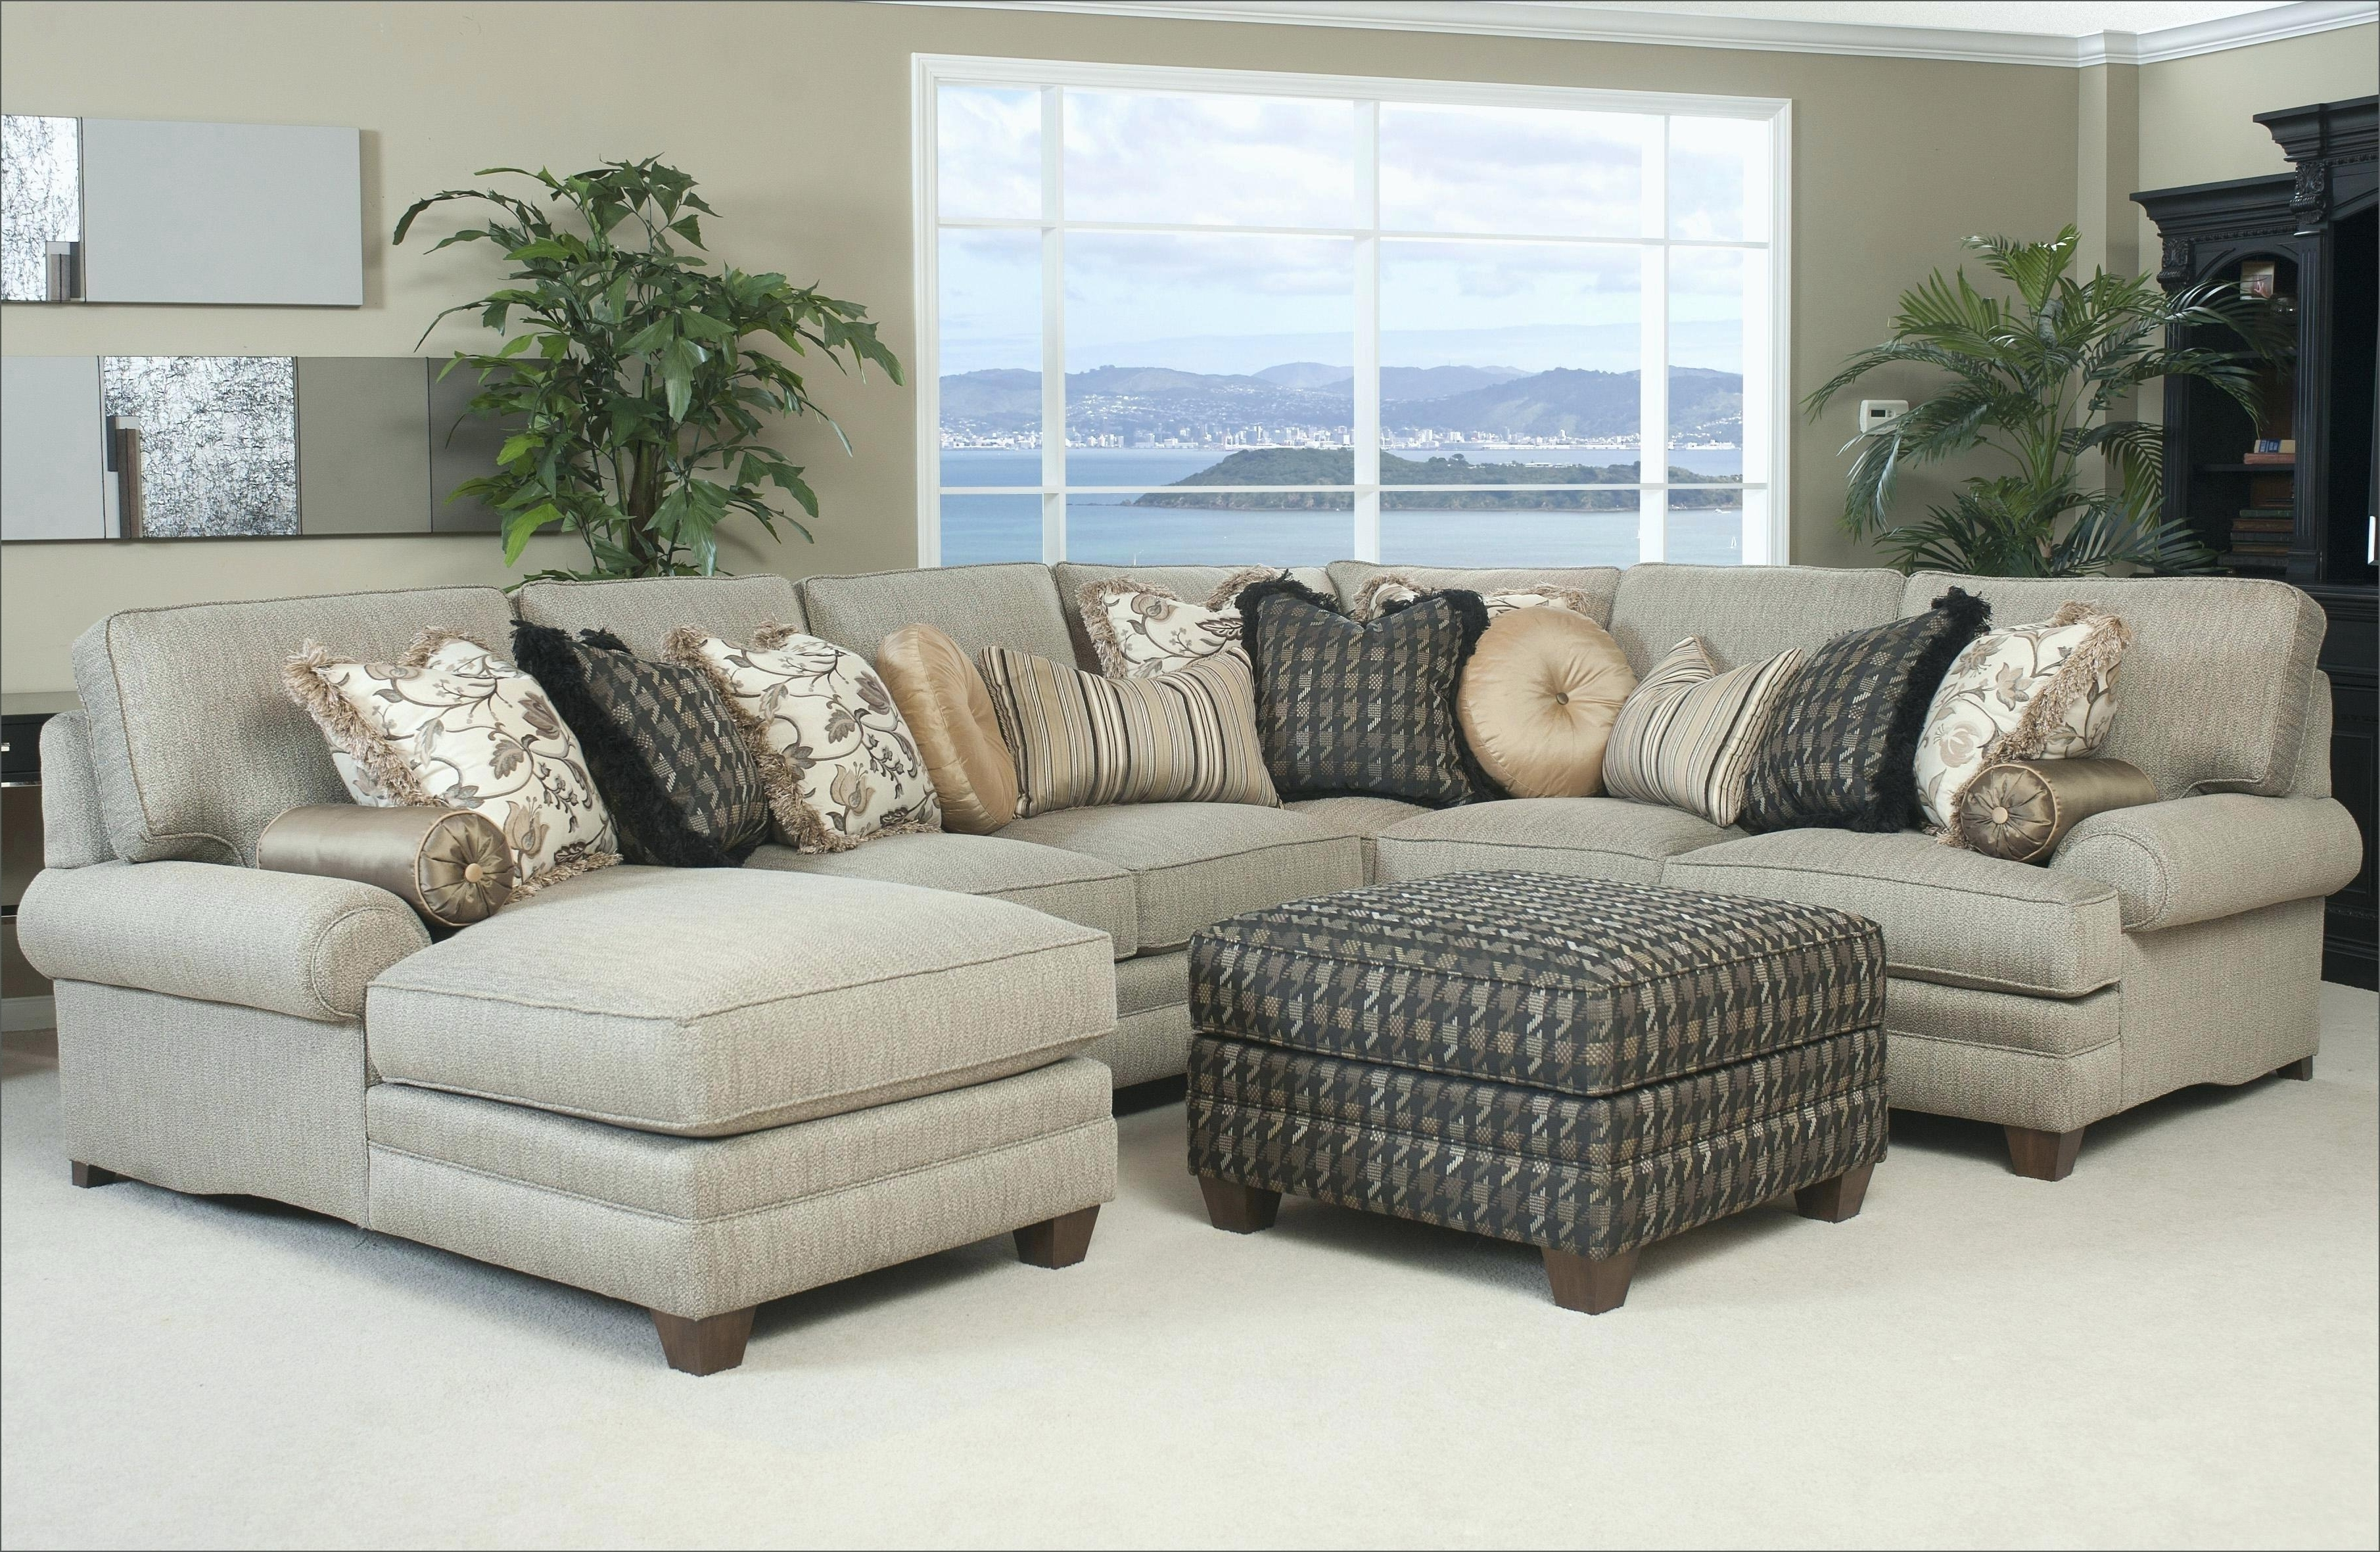 Sofa : Clearance Sale On Sectional Sofa Piece Amazon Salesectional Intended For Well Liked Michigan Sectional Sofas (View 16 of 20)